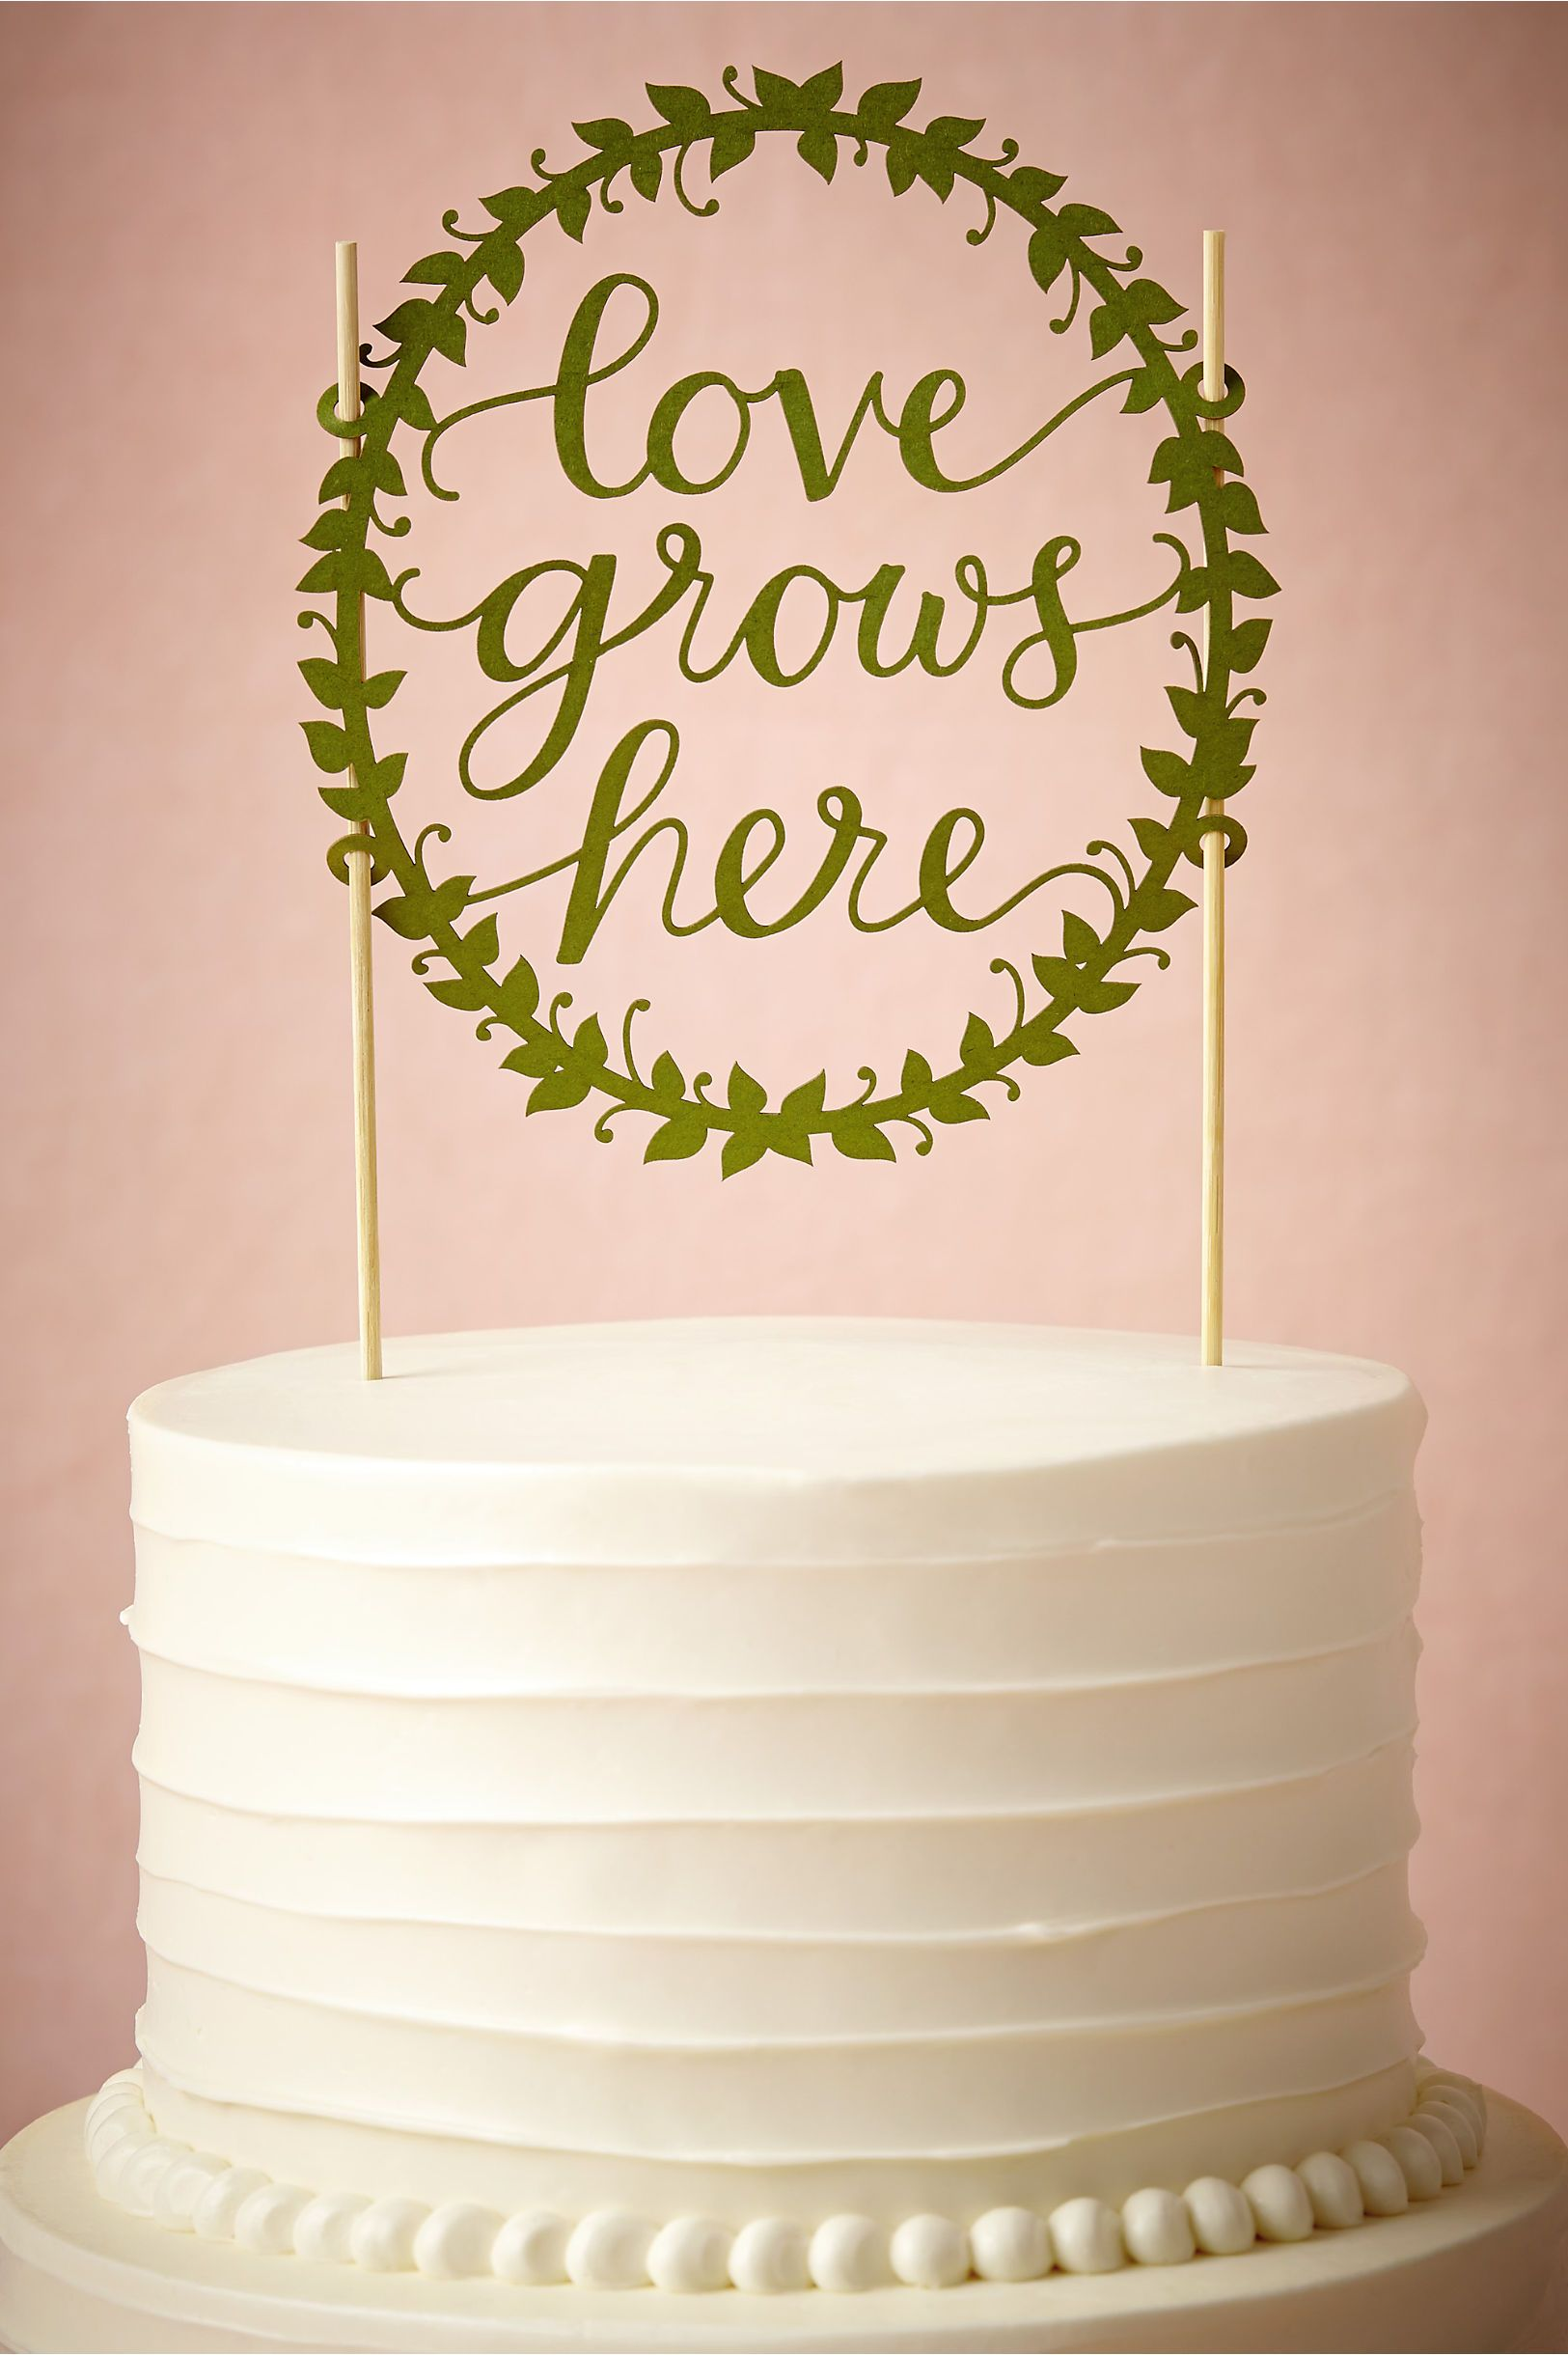 Express yourself with one of these typography cake toppers